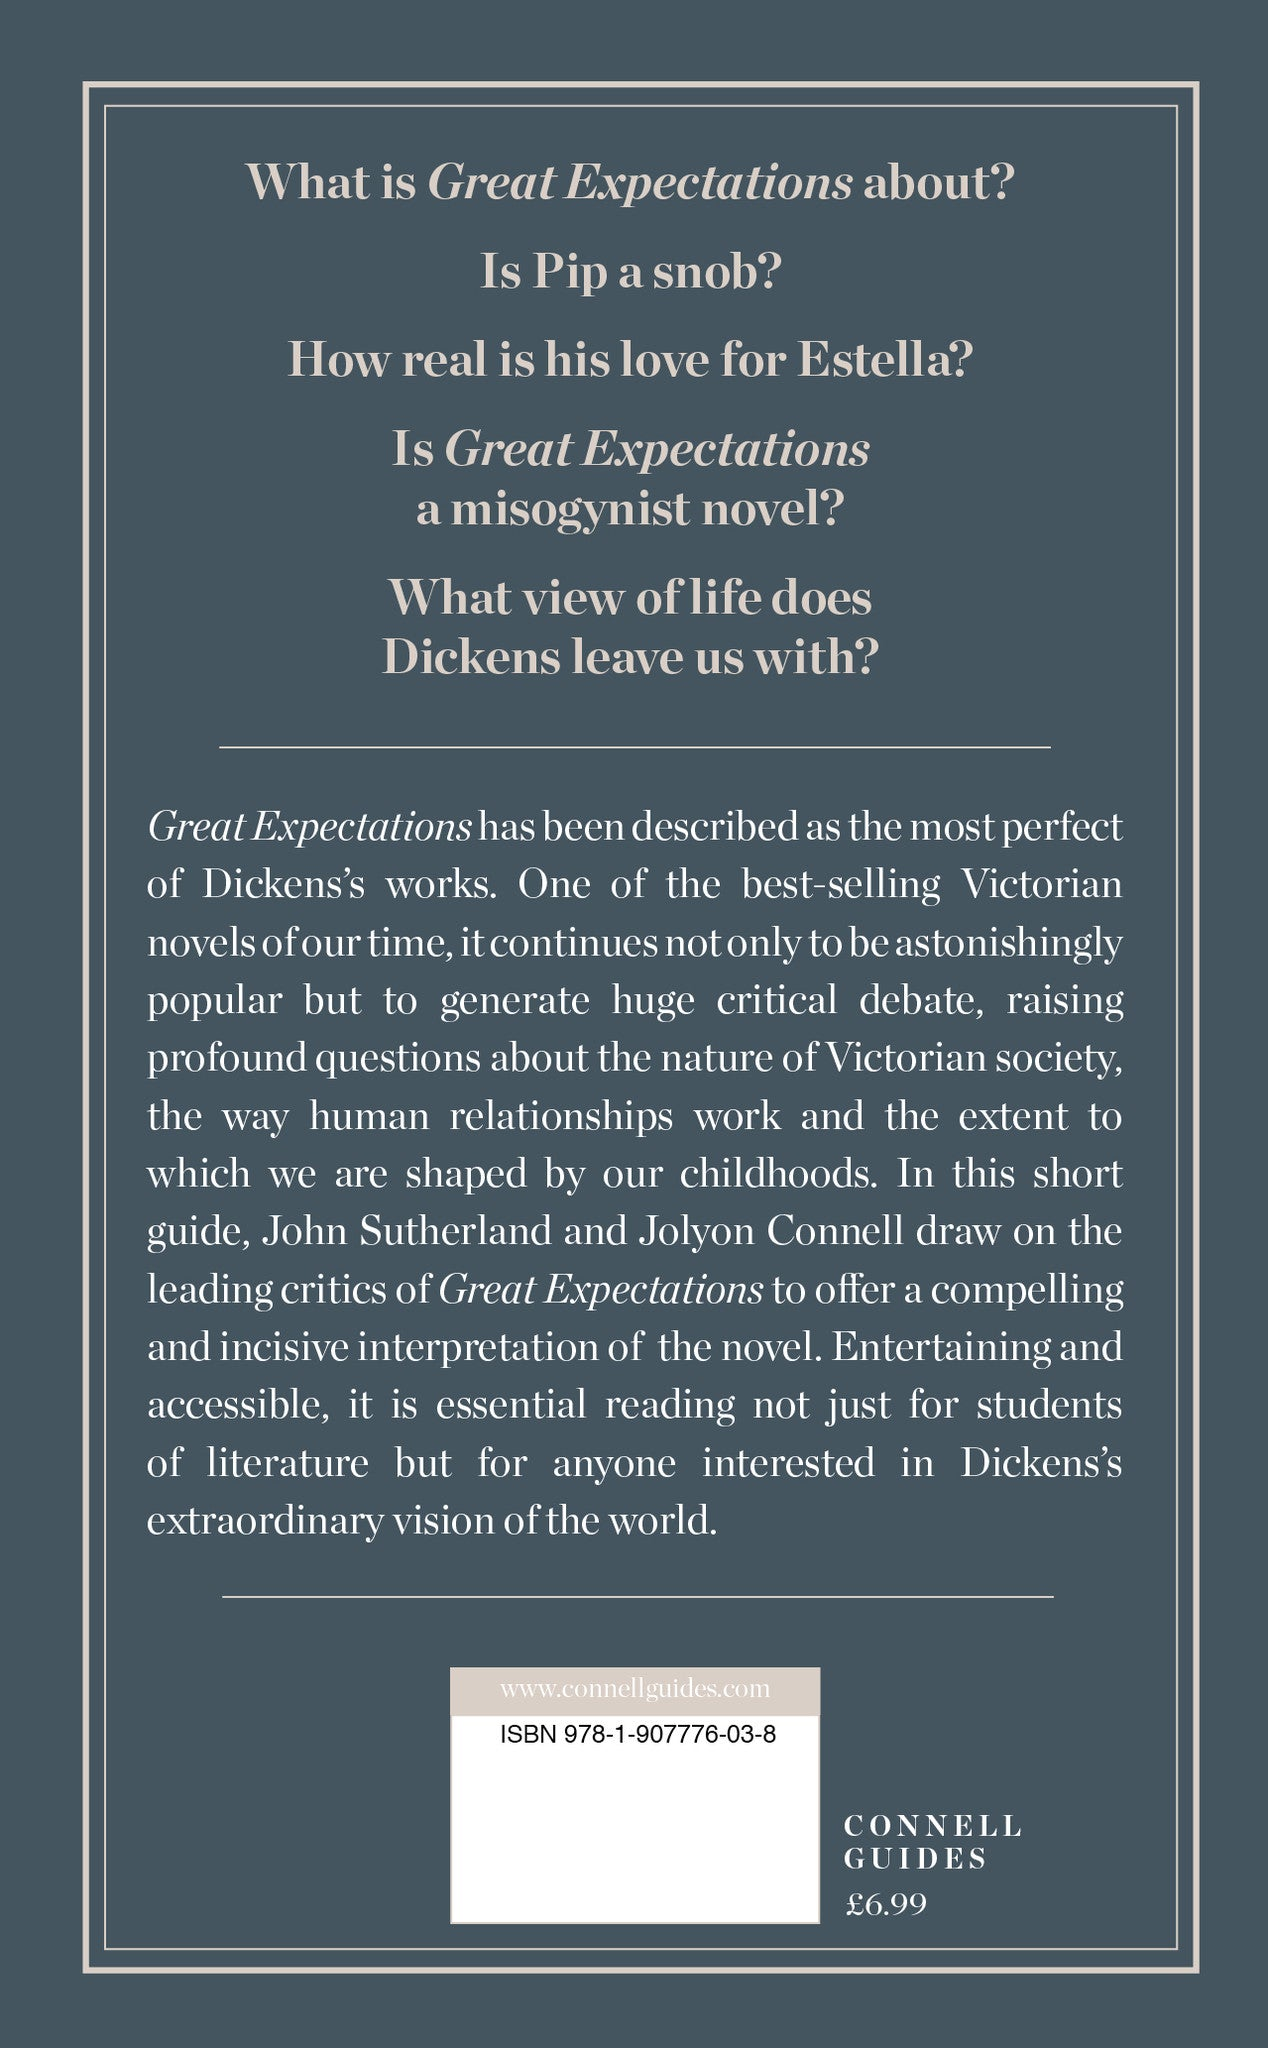 great expectations full text